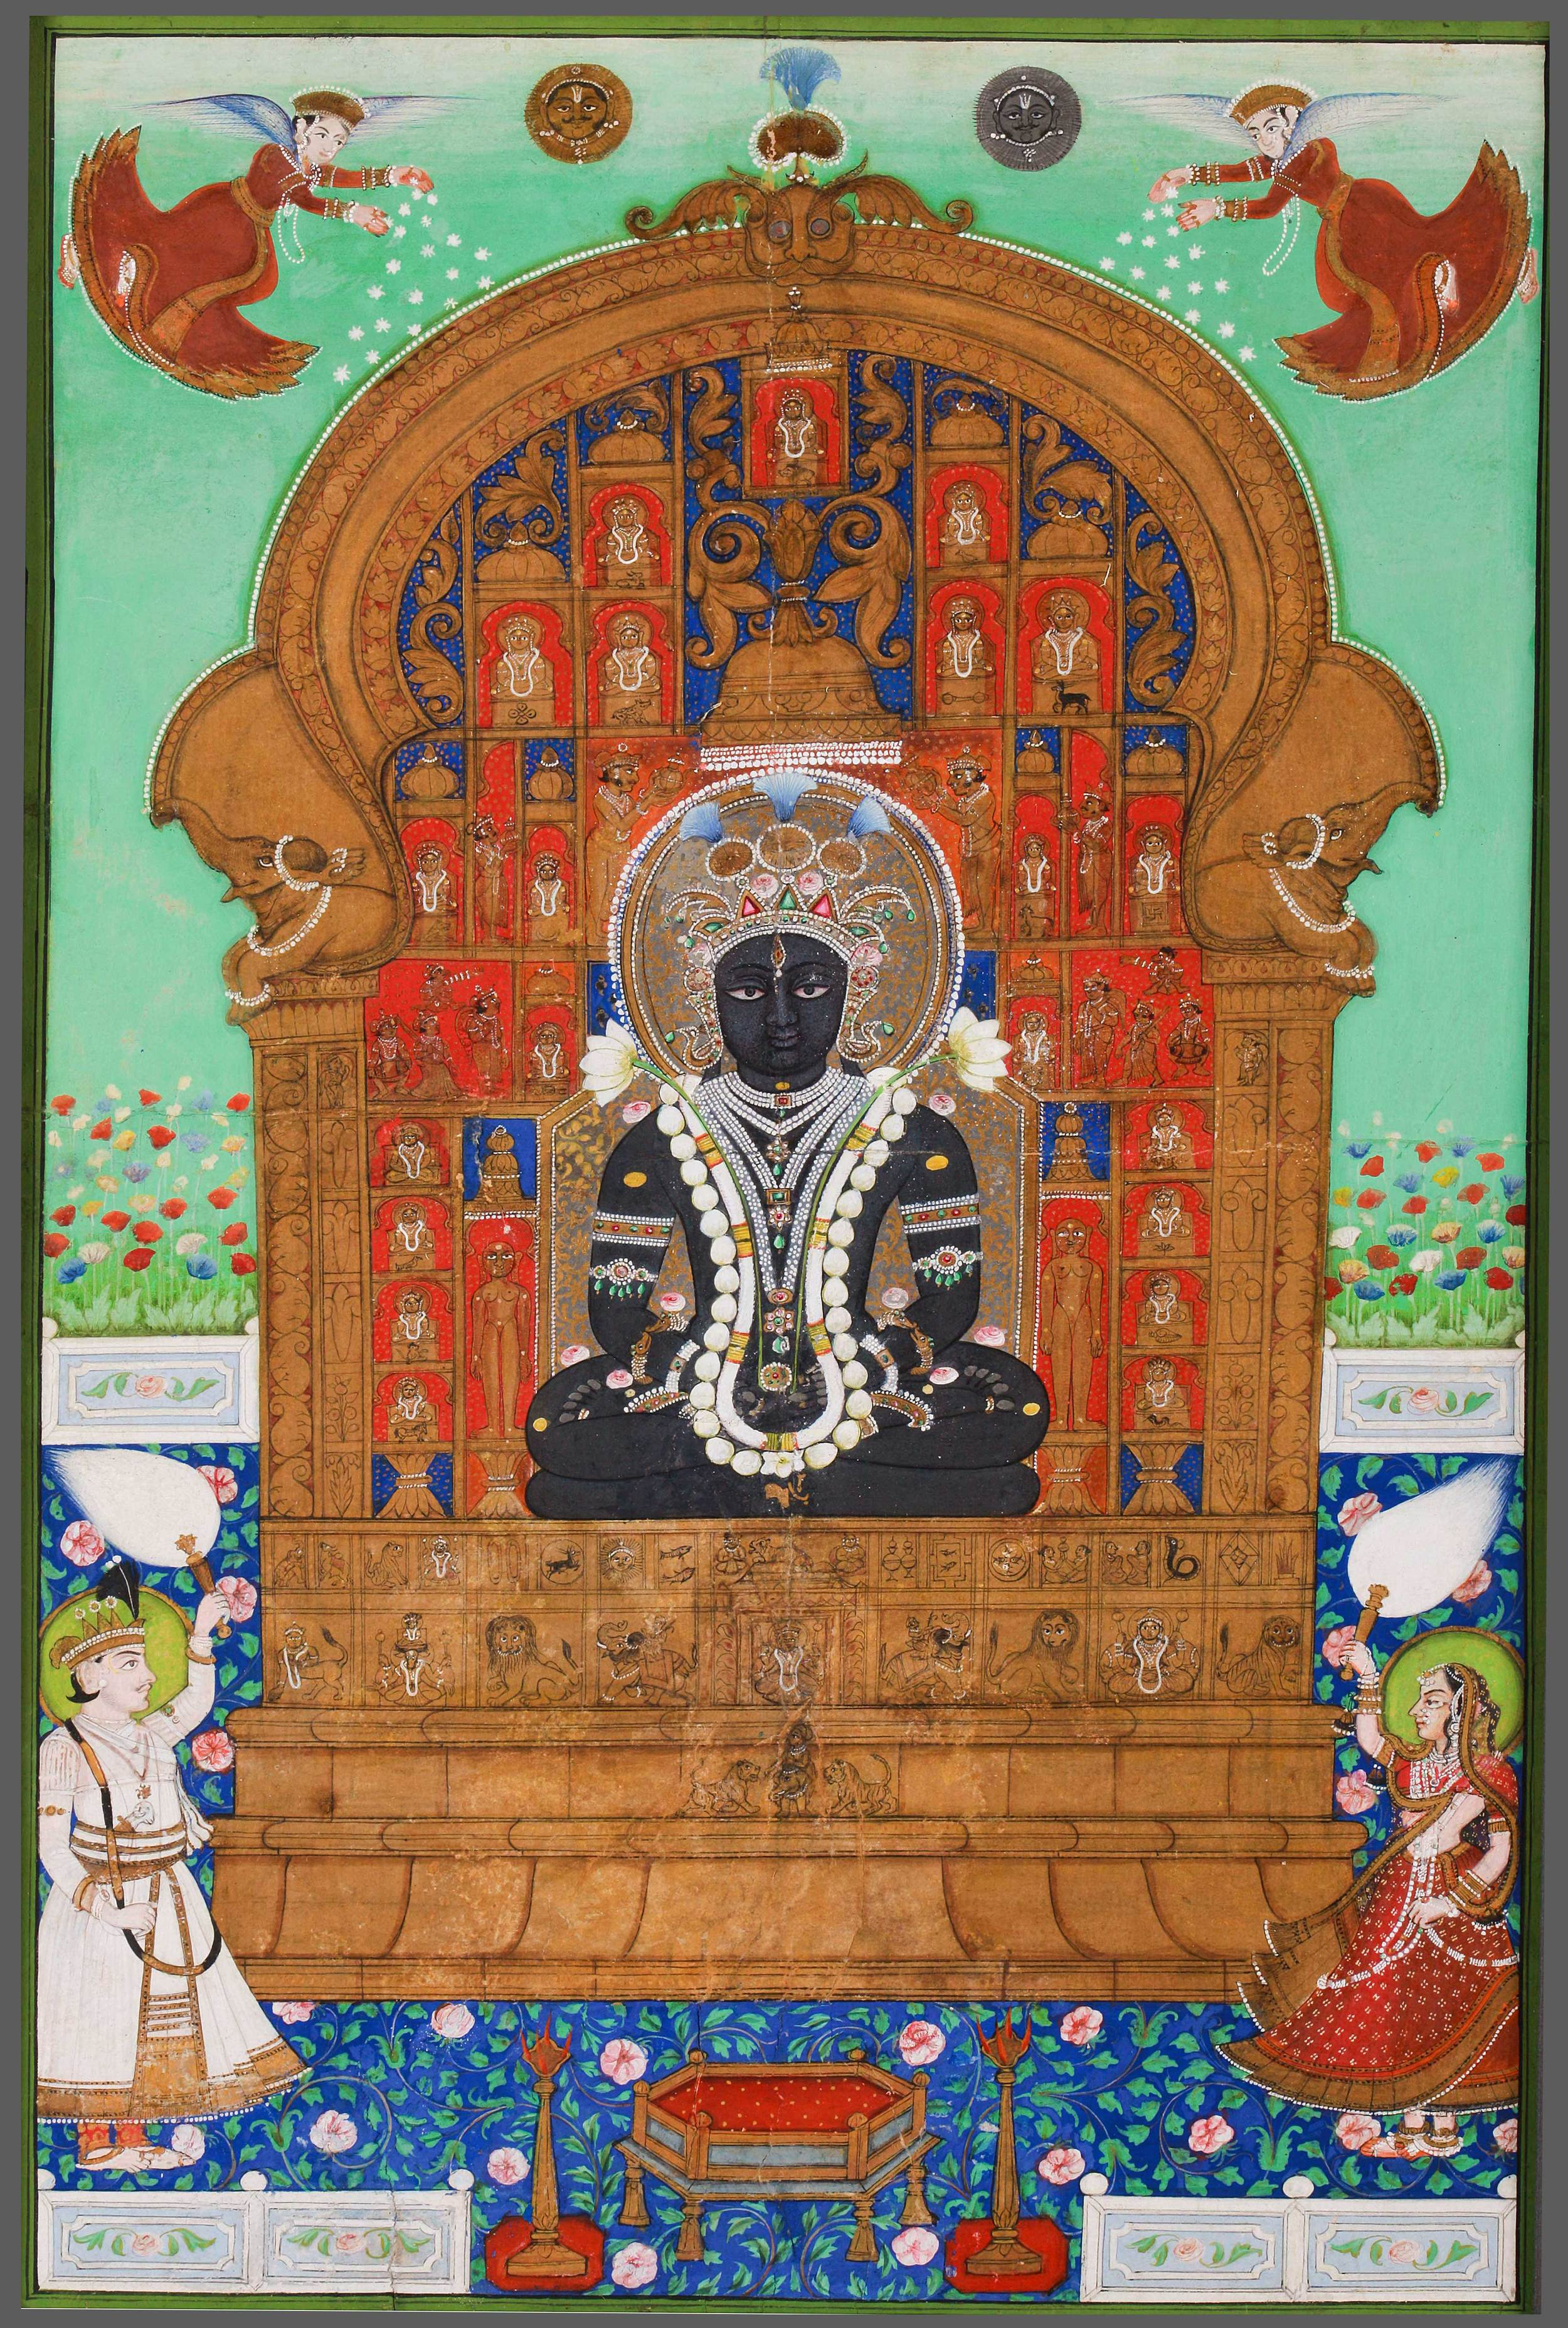 Adinath Enth  roned.  Western India, late 18th – mid 19th century. Mineral pigments on paper. 17 1/8 x 11 ¼ in. (43.5 x 28.5 cm). Shraman Foundation 2013.4.